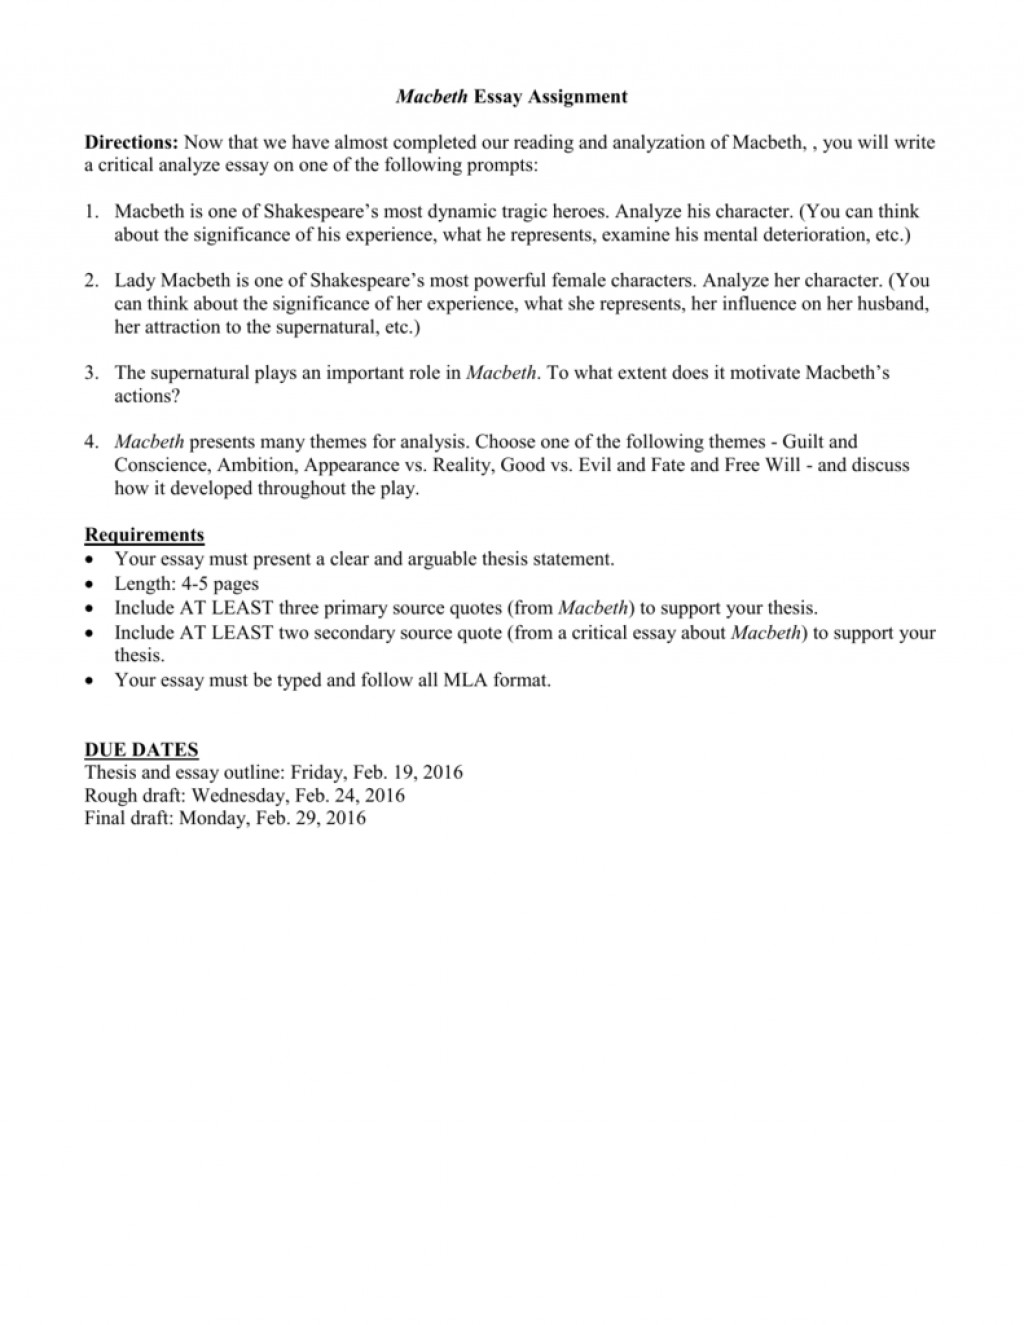 011 Essay On Macbeth Example 008018496 1 Marvelous And Lady Macbeth's Relationship Literary As A Tragic Hero Plan Large